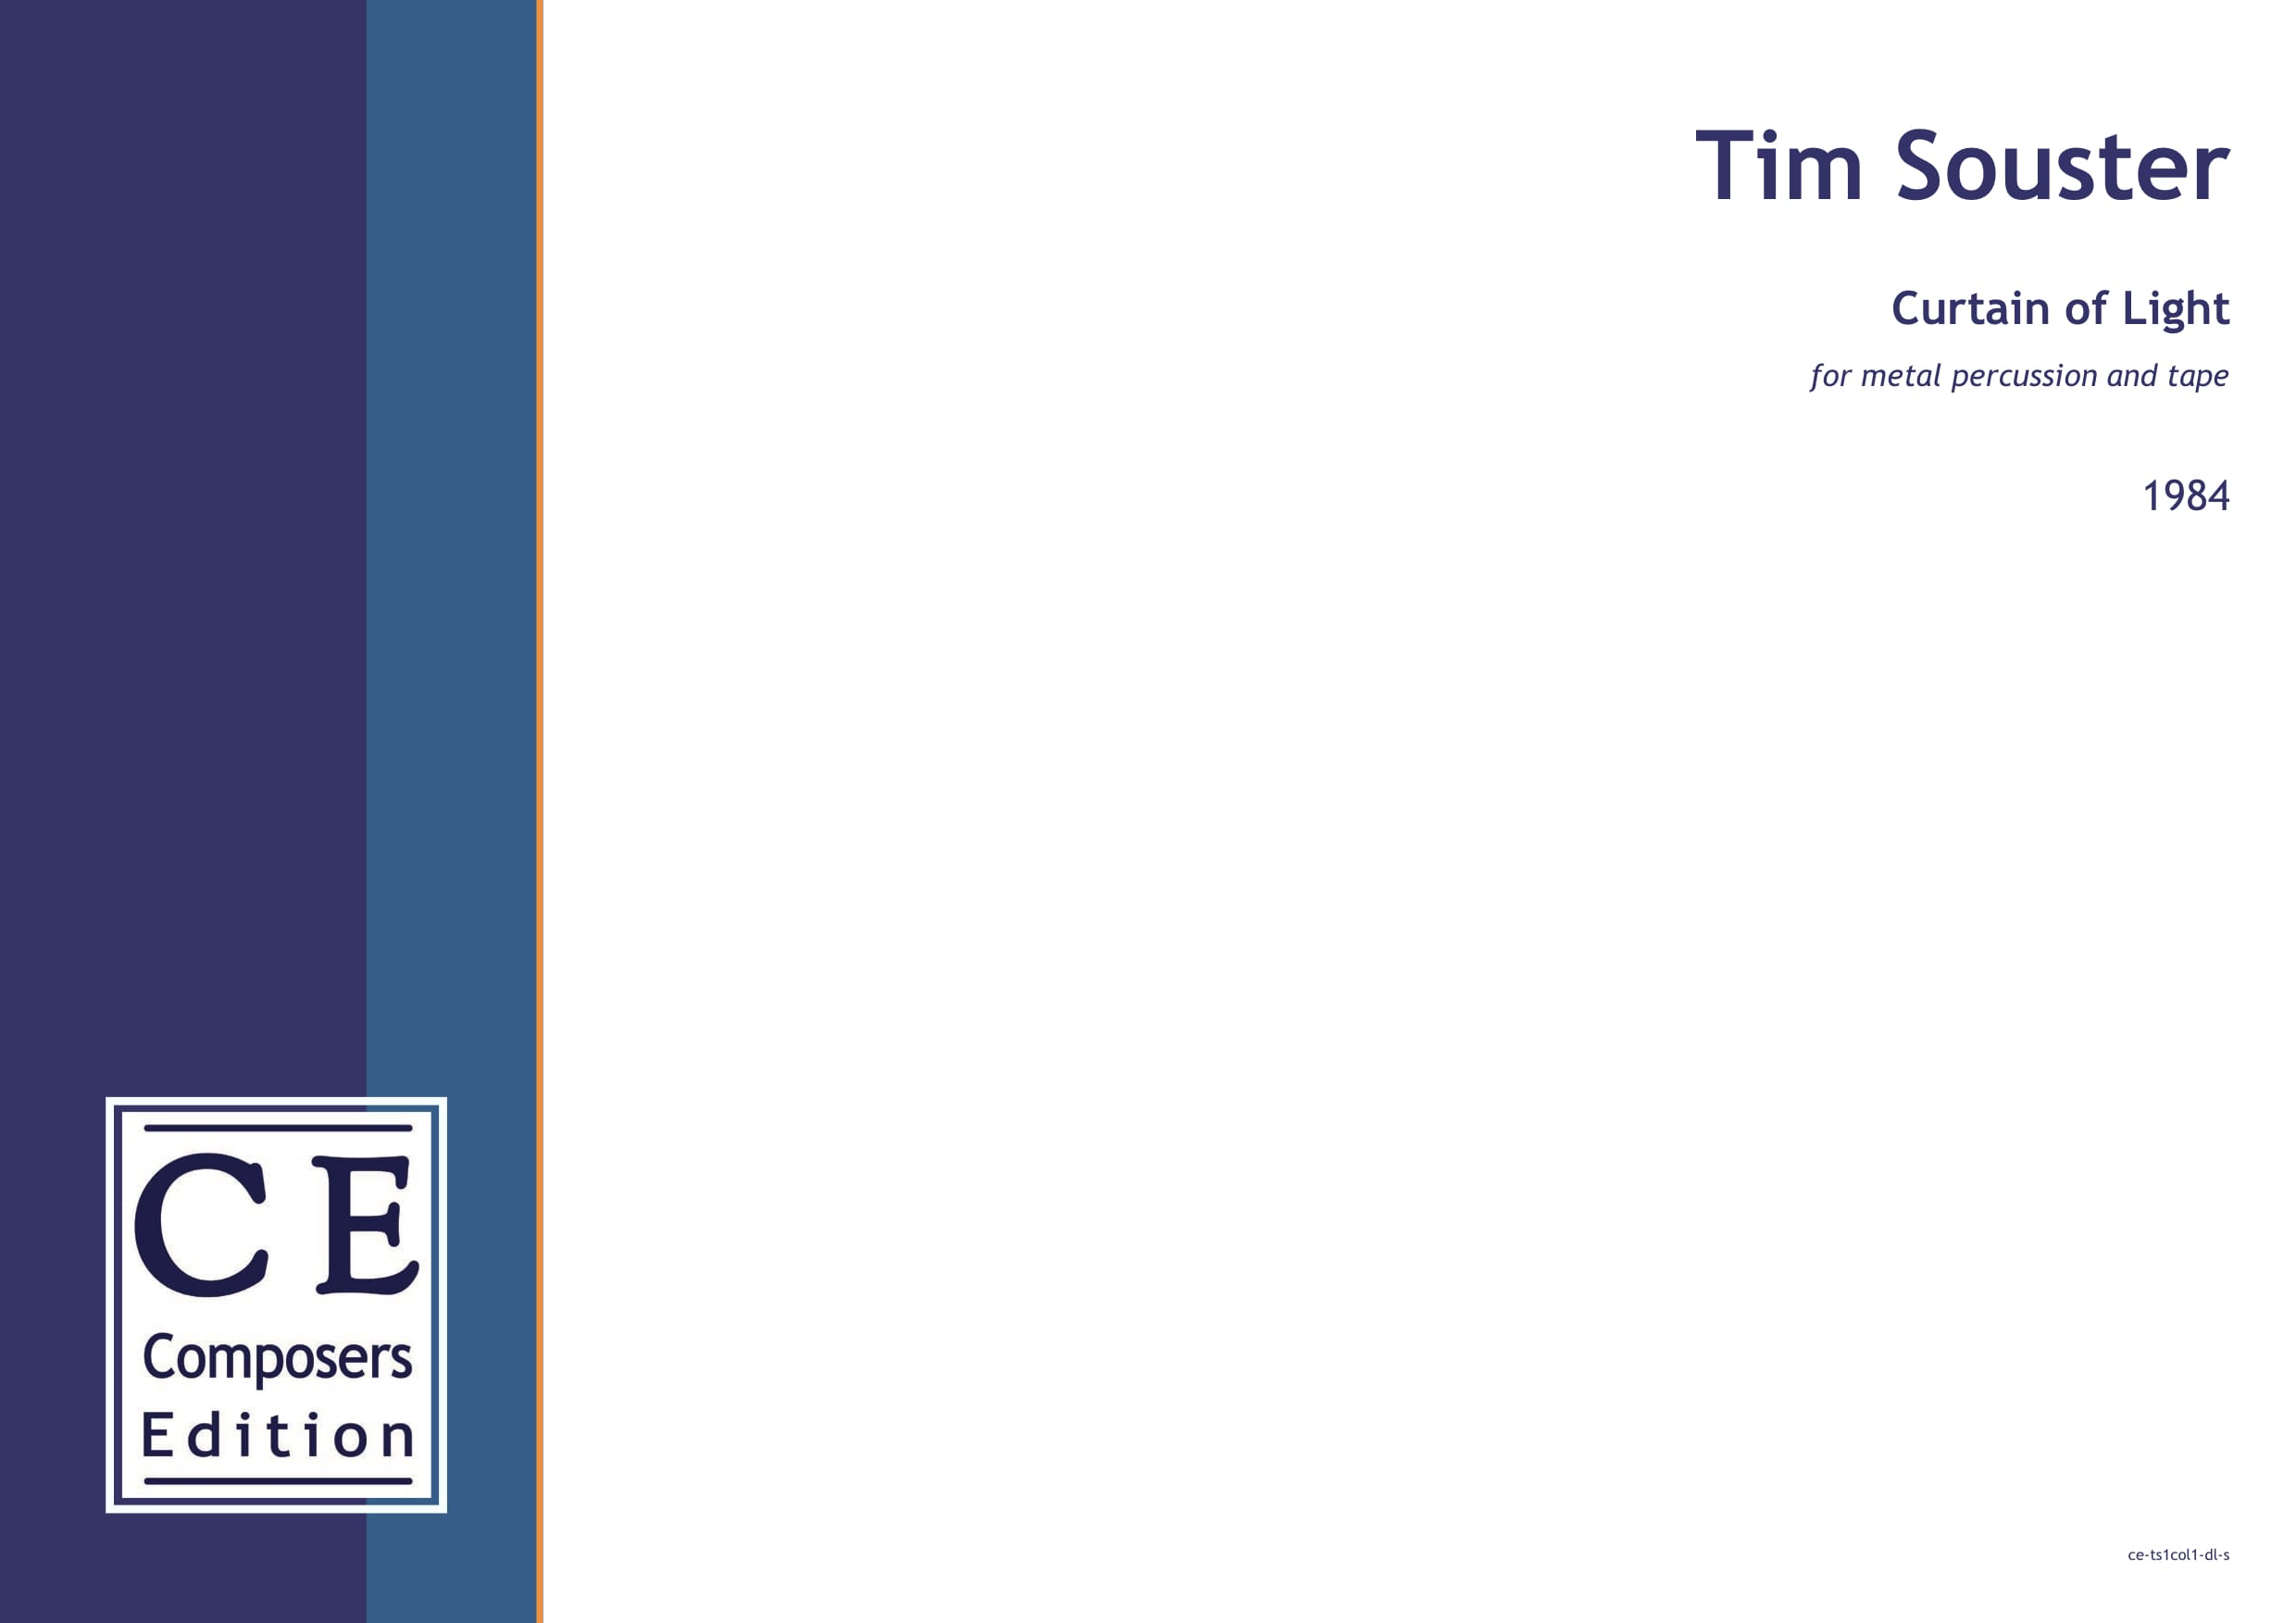 Tim Souster: Curtain of Light for metal percussion and tape